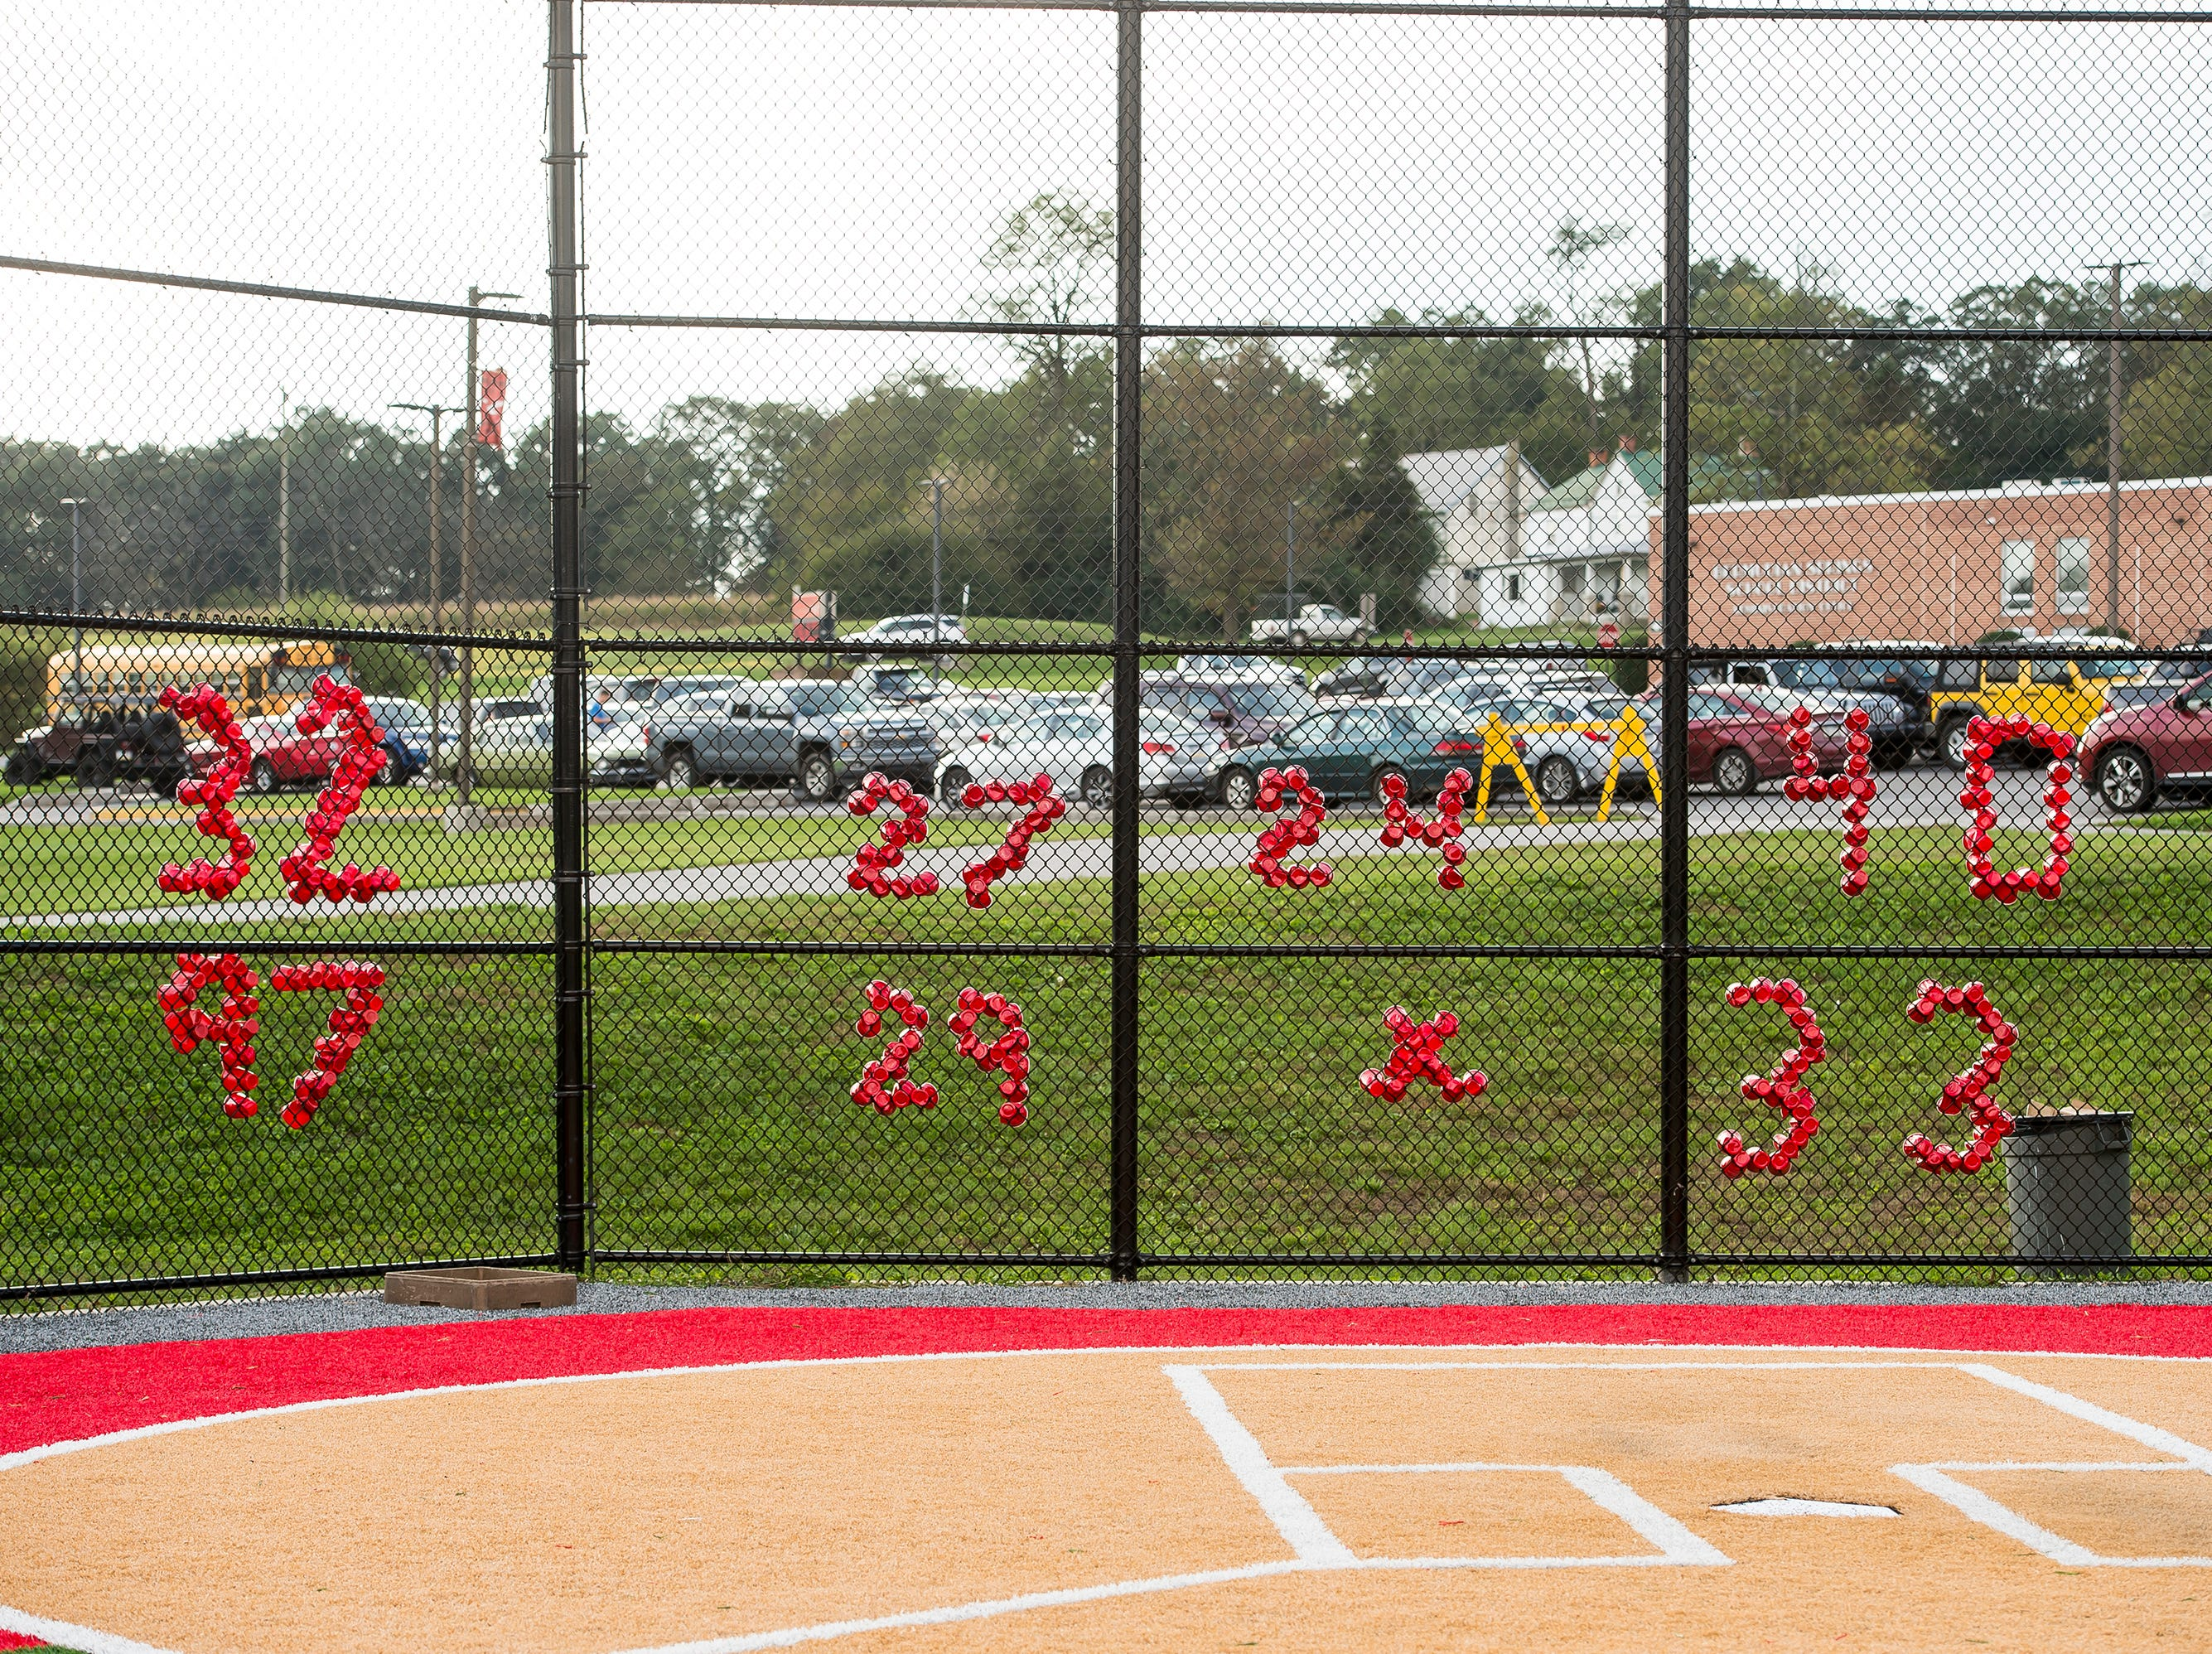 Bermudian Springs field hockey honored their seven seniors during a game against Littlestown on Tuesday, October 9, 2018. The seniors are Cecilia Lua (32), Kaitlyn McCollum (27), Bekah Eaton (24), Cindy Rivera (40), Melaina Shoop (97), Jenn Garcia (29) and Kayla Pyles (33).